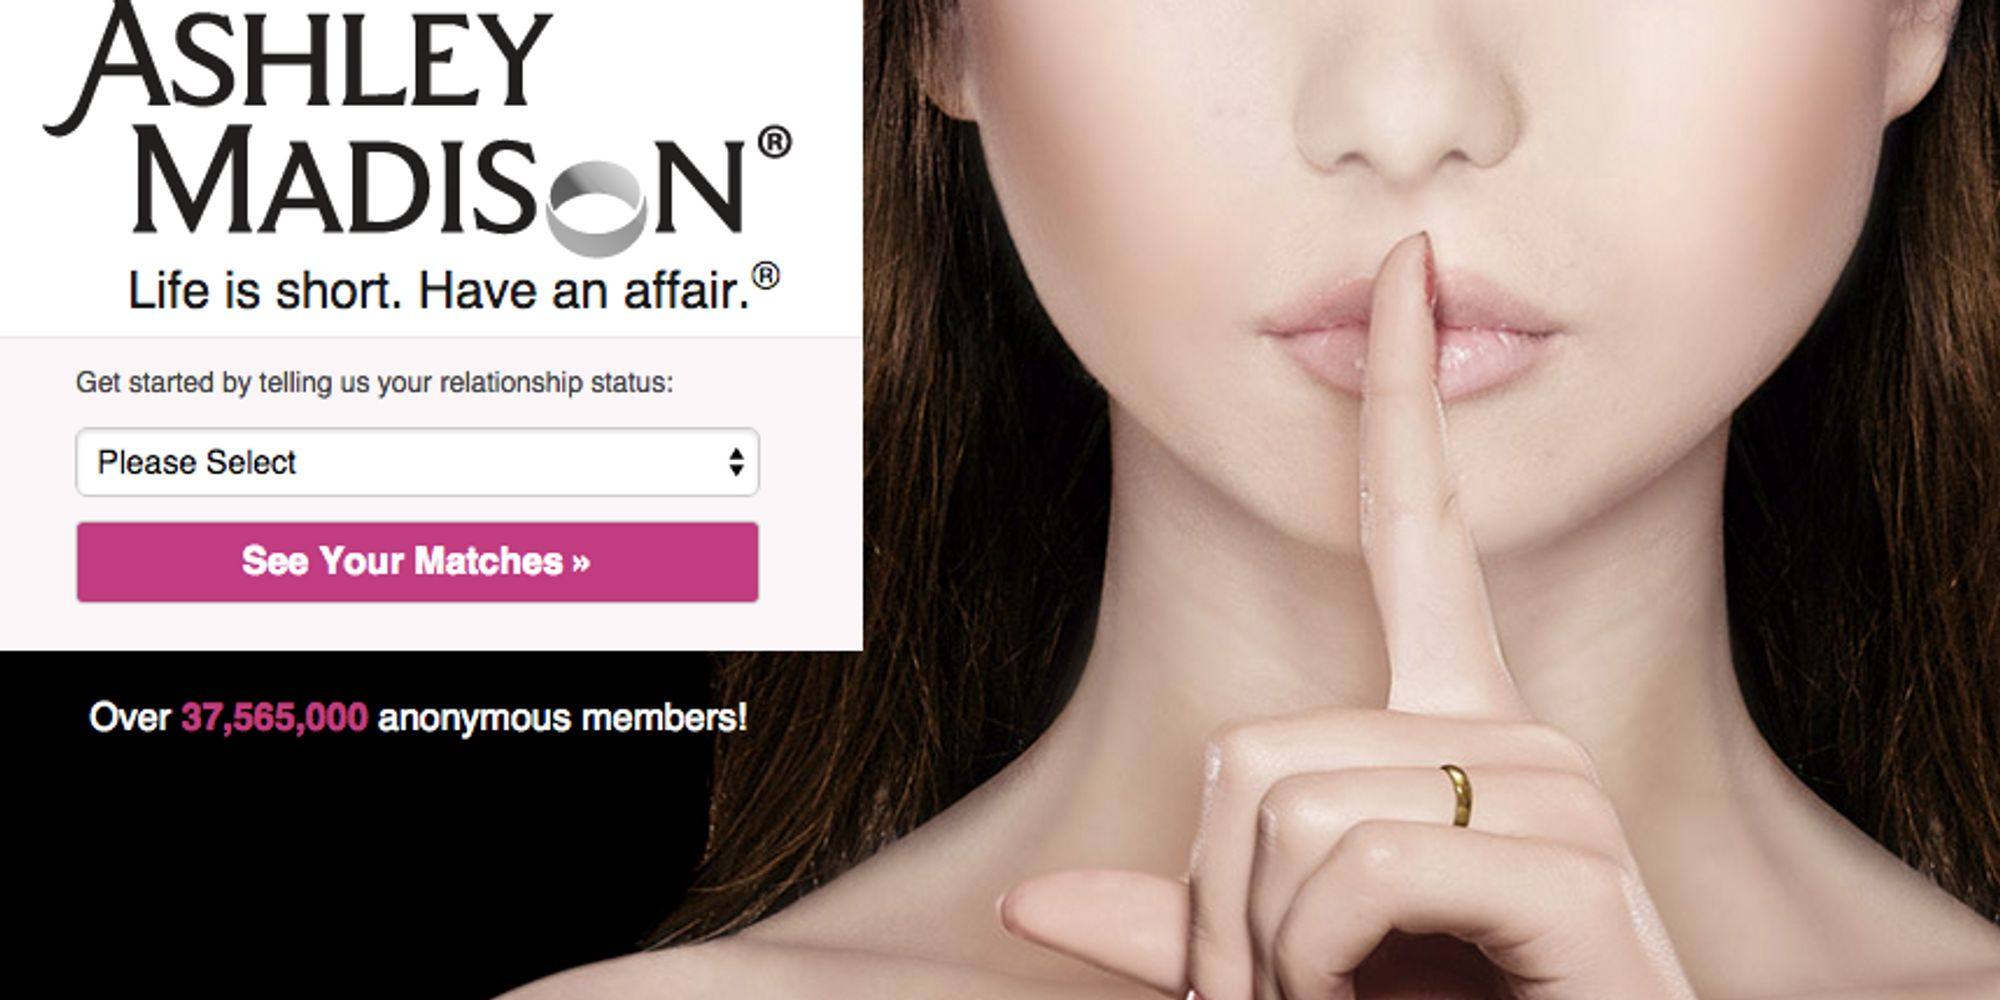 Cheating Website AshleyMadison com Hacked     Million Users Now     The Huffington Post Cheating Website AshleyMadison com Hacked     Million Users Now Vulnerable   The Huffington Post